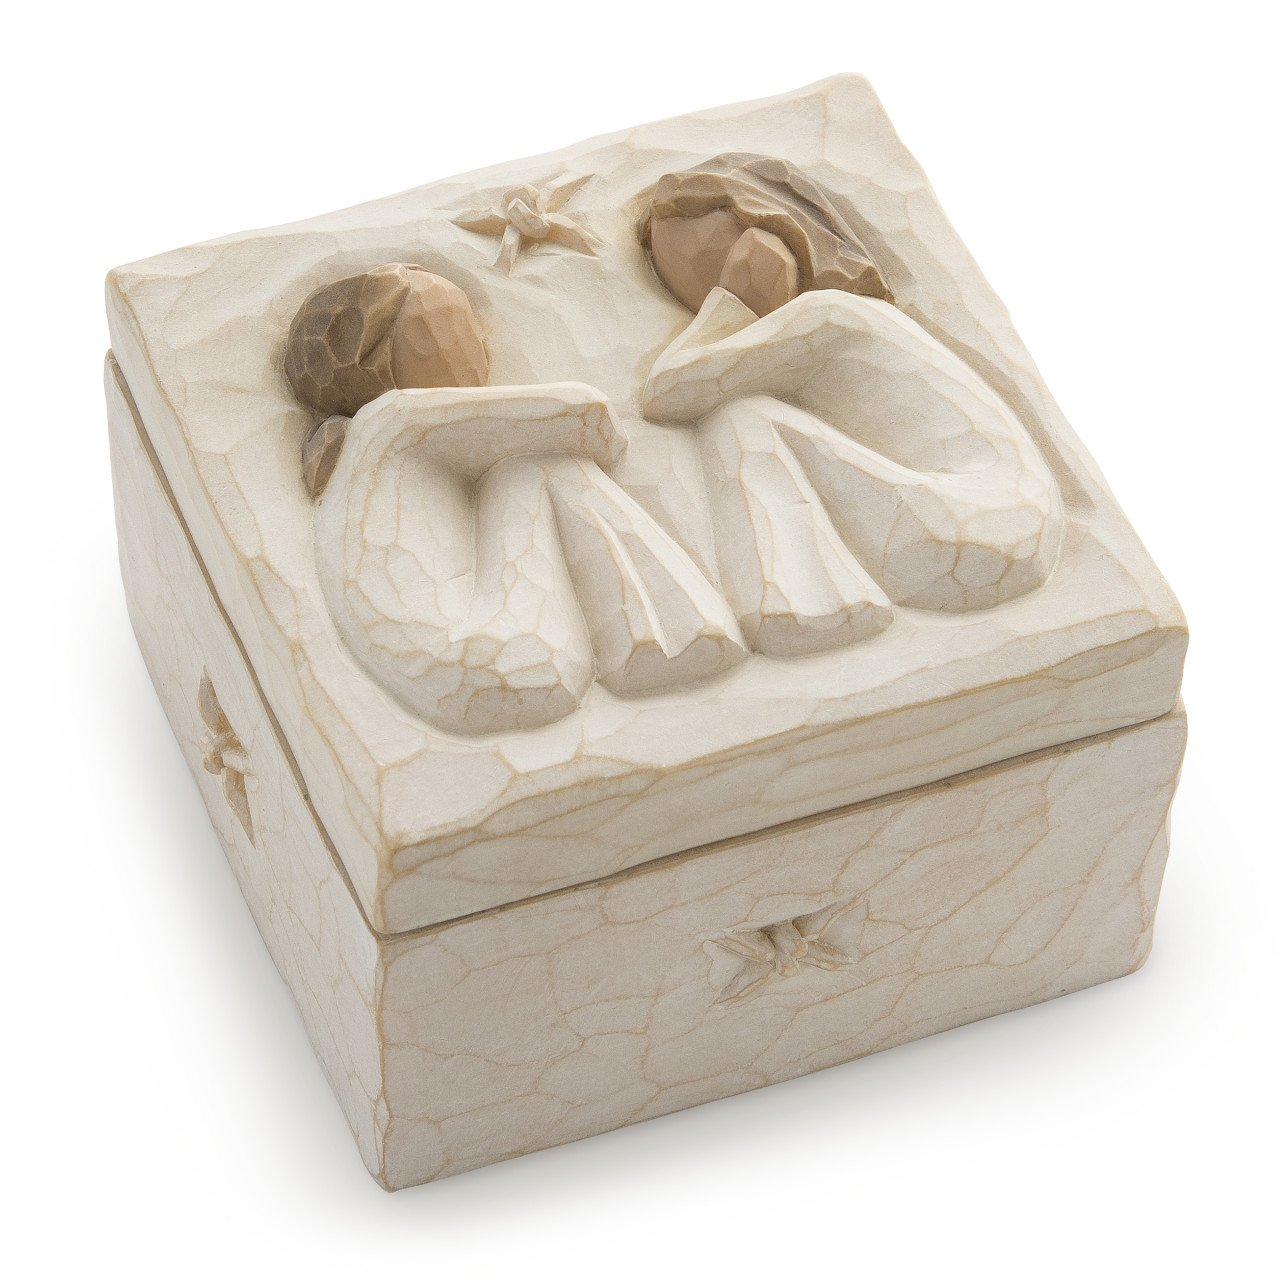 Willow Tree Friendship, sculpted hand-painted keepsake box by Willow Tree